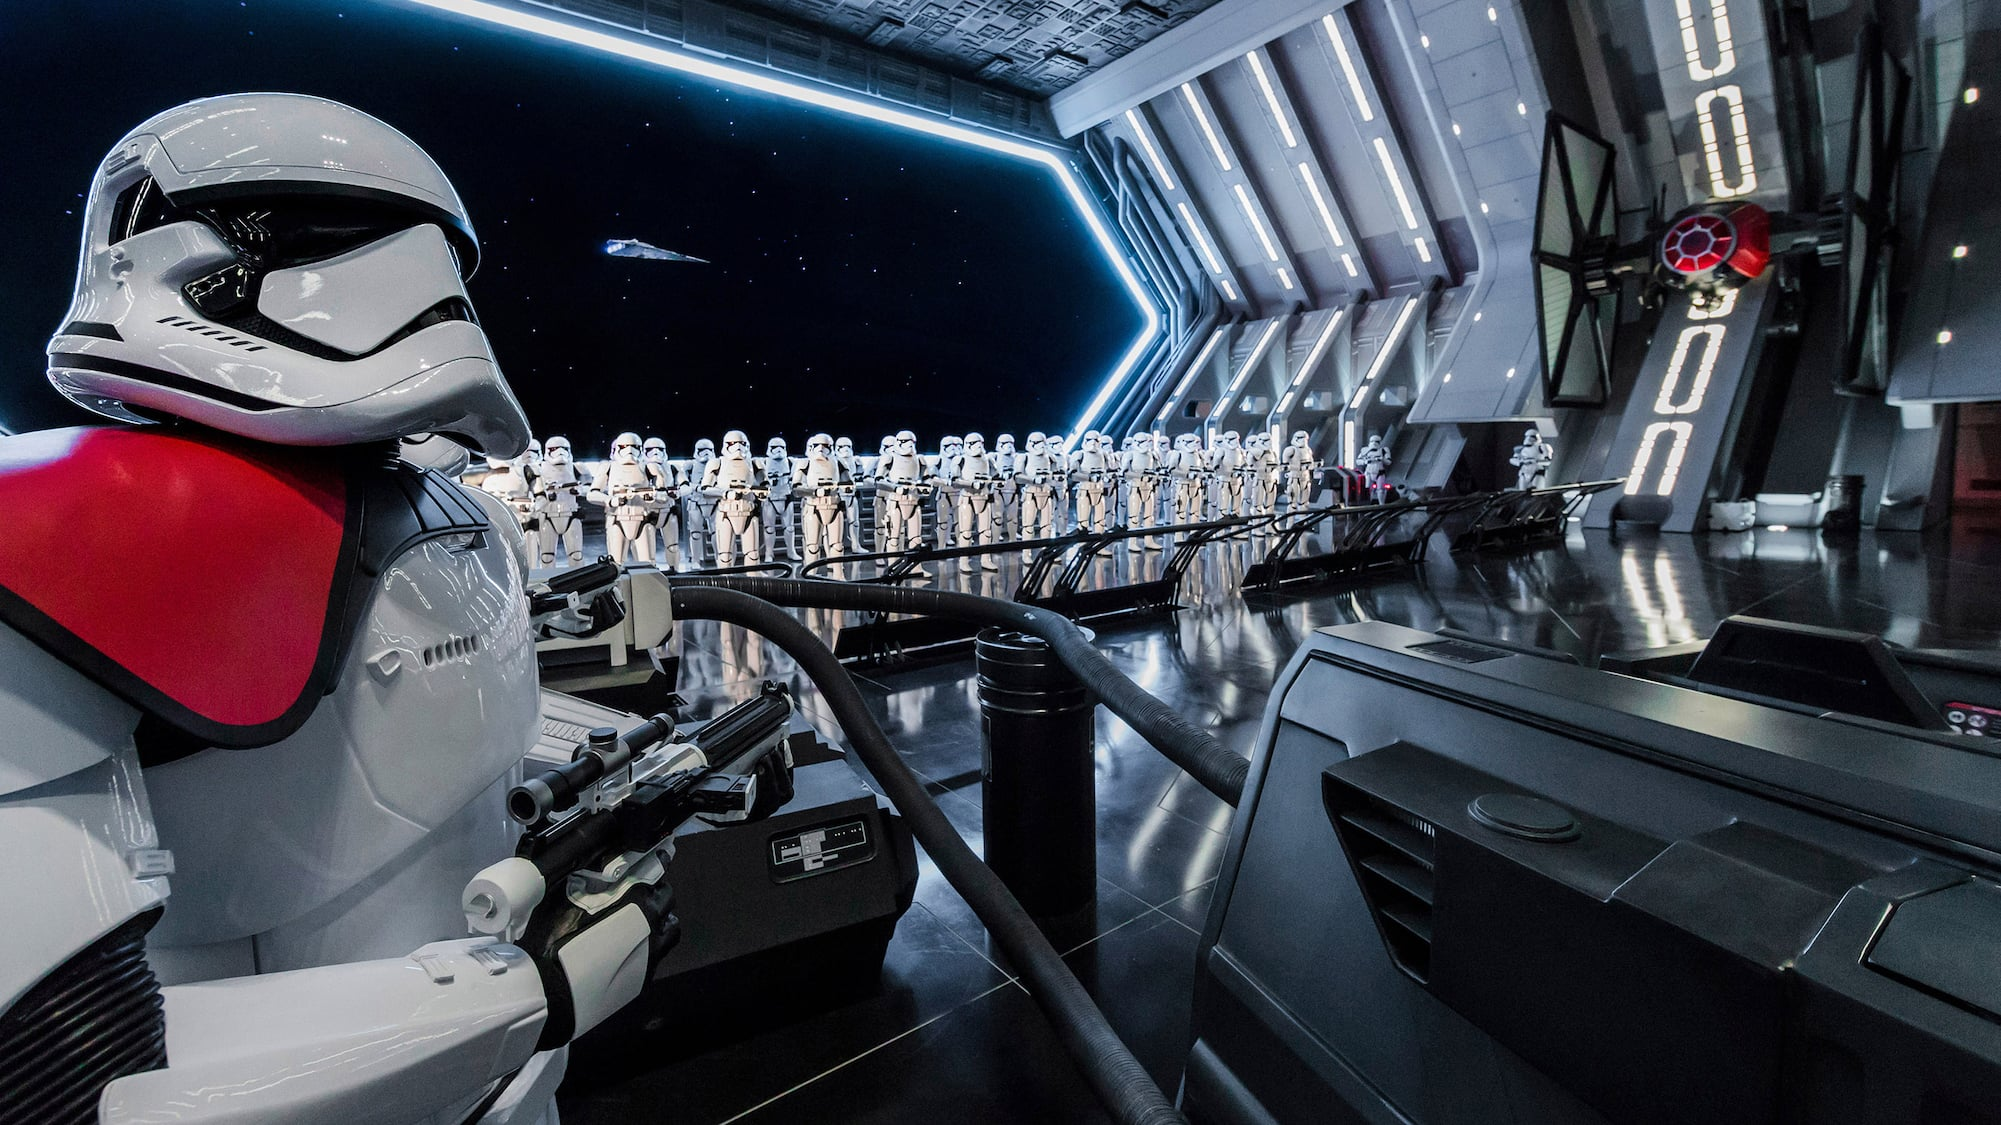 Star Wars: Rise of the Resistance at Disney's Hollywood Studios ...